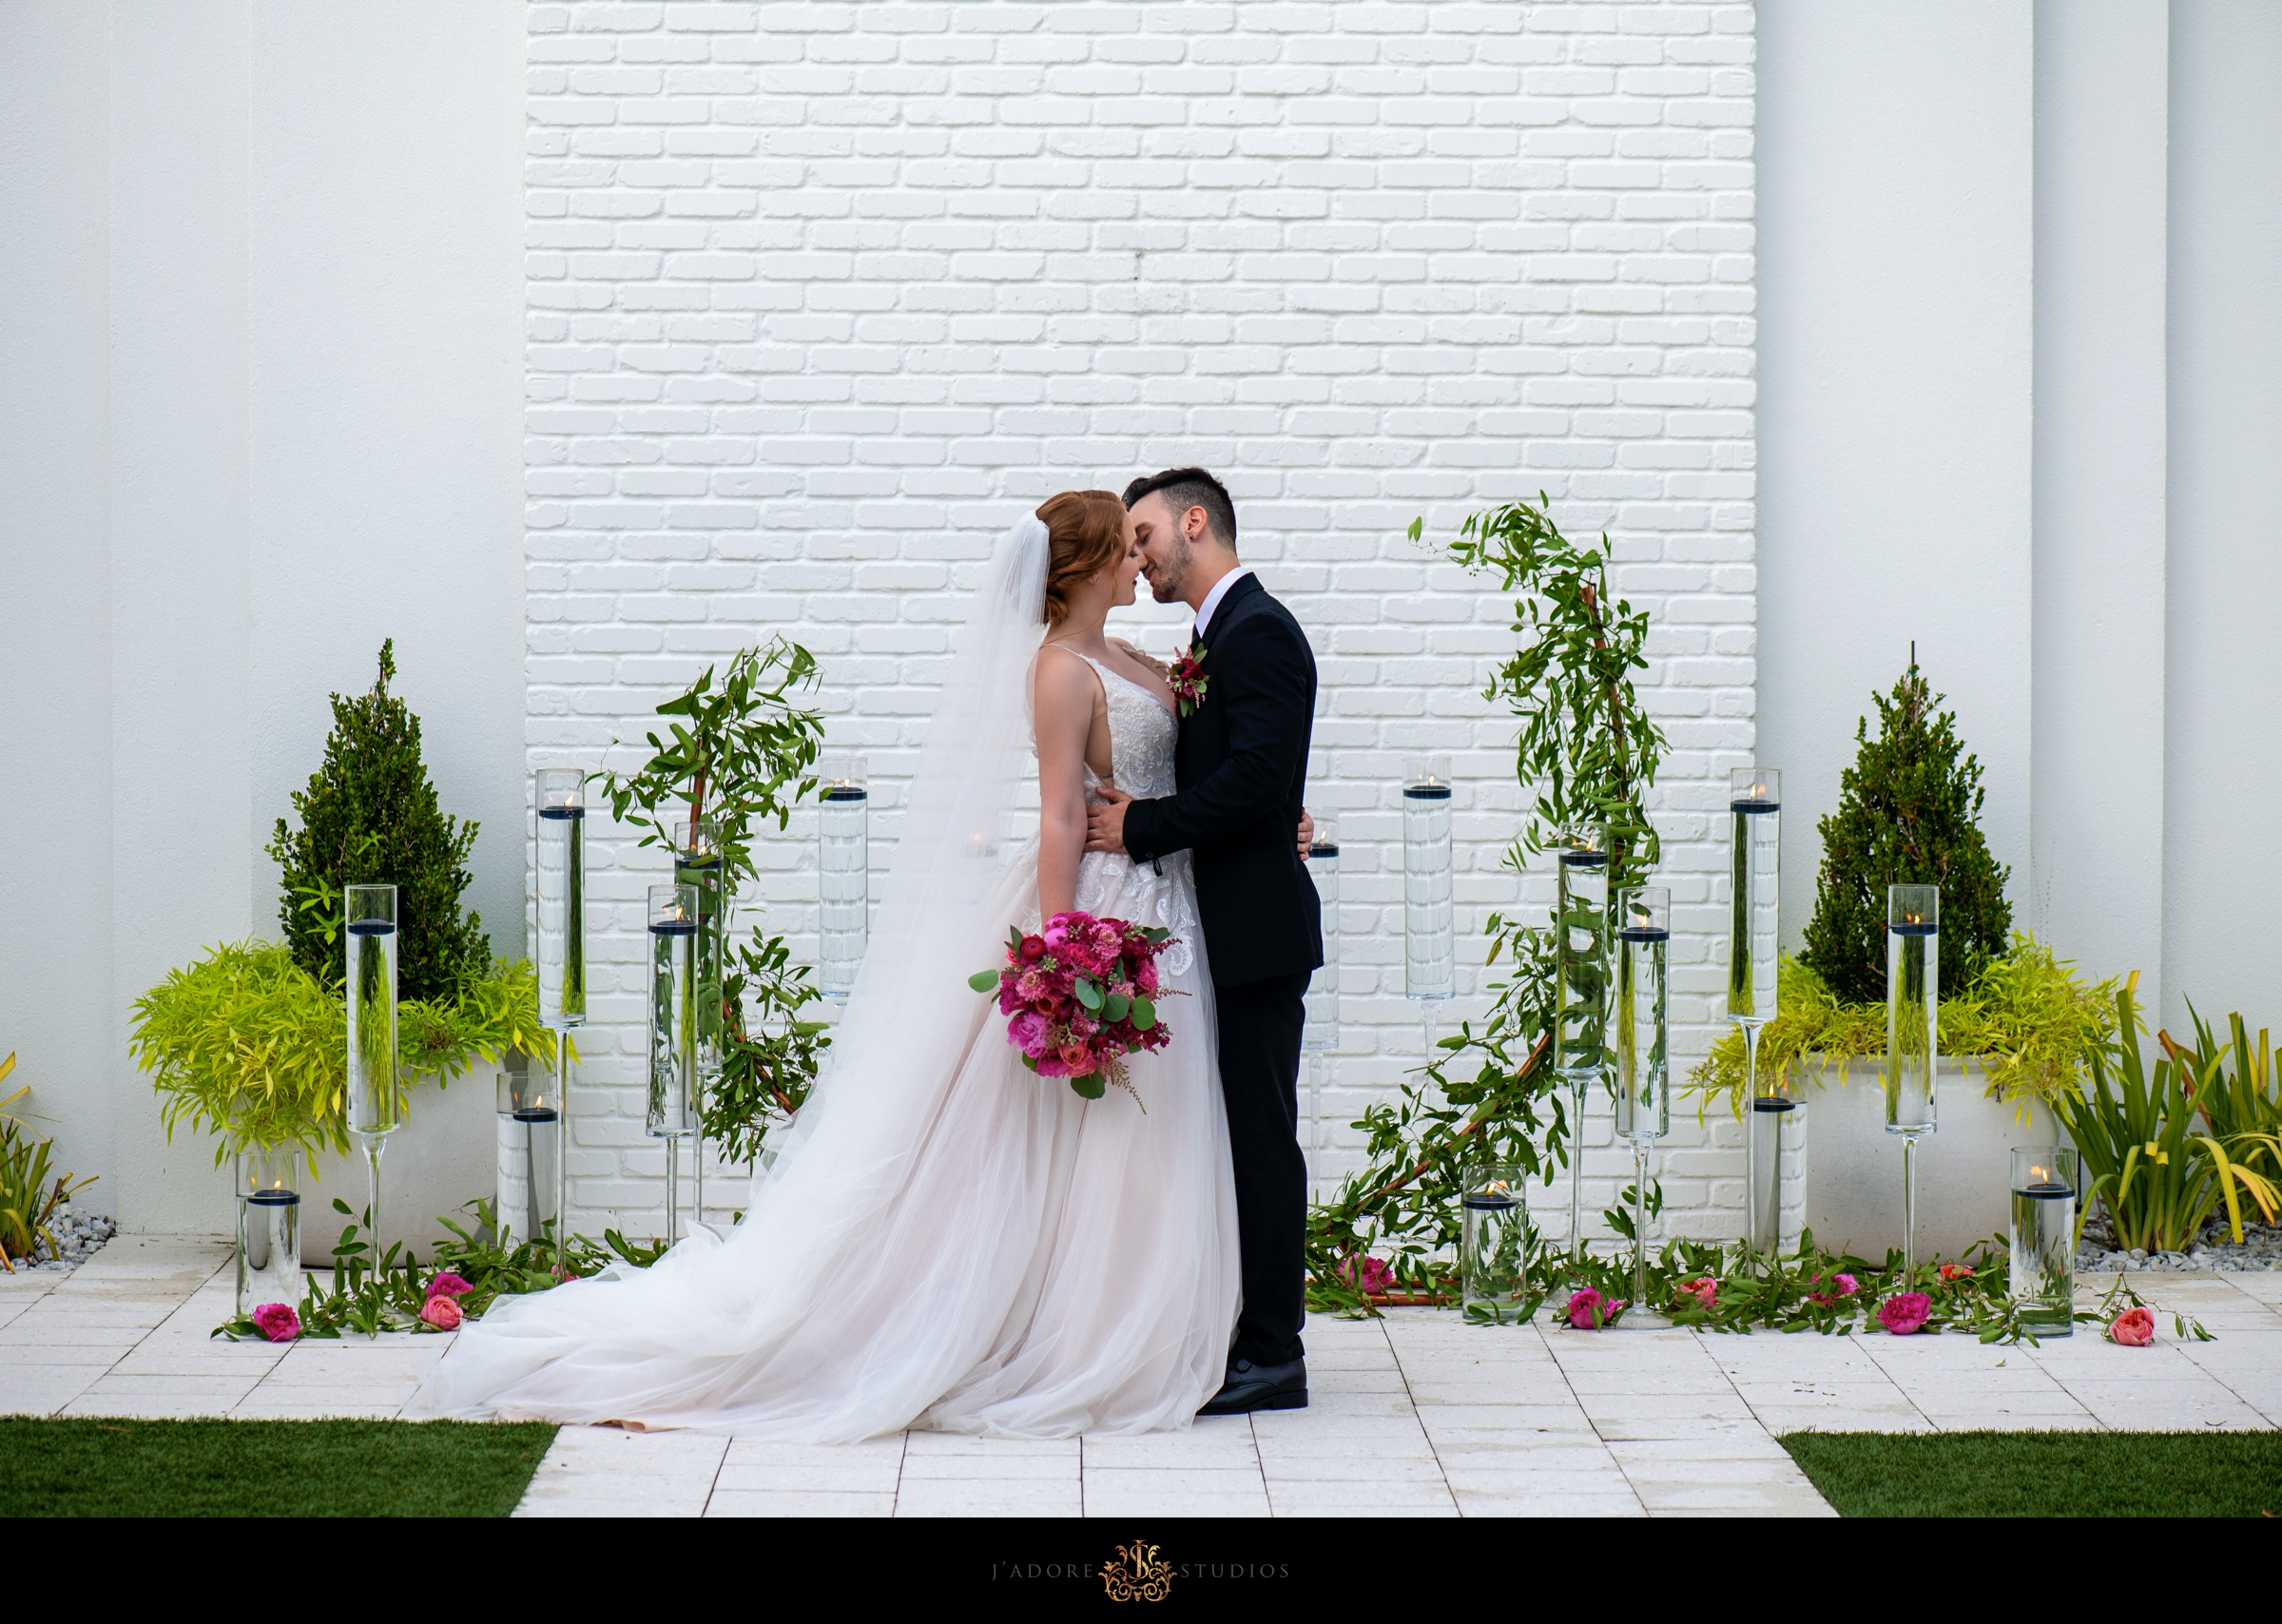 First kiss at alter at Clay Theatre Wedding Venue in Green Cove Springs Florida